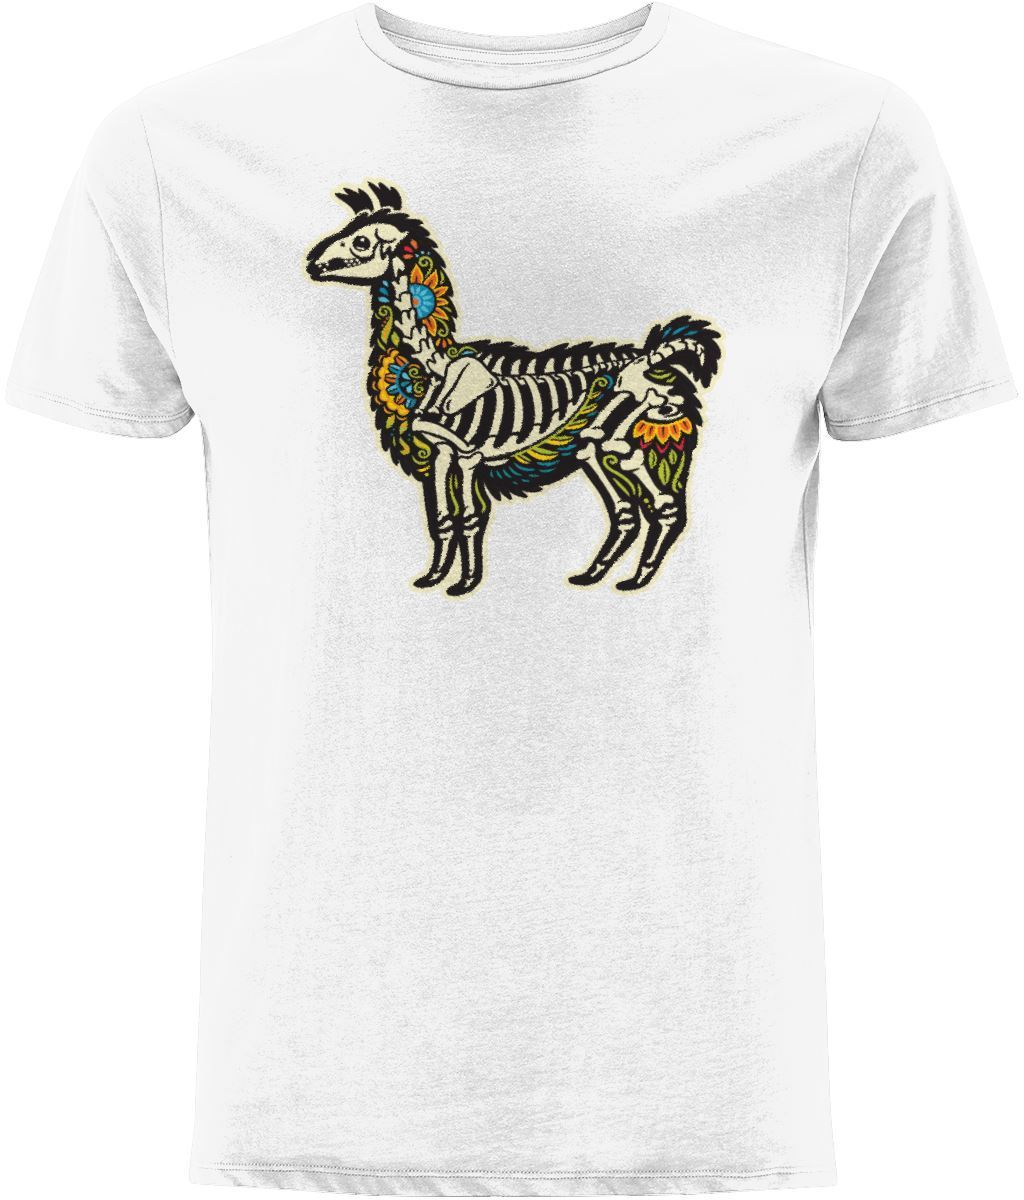 Alpaca Skeleton T-shirt Clothing IndianBelieves White X-Small